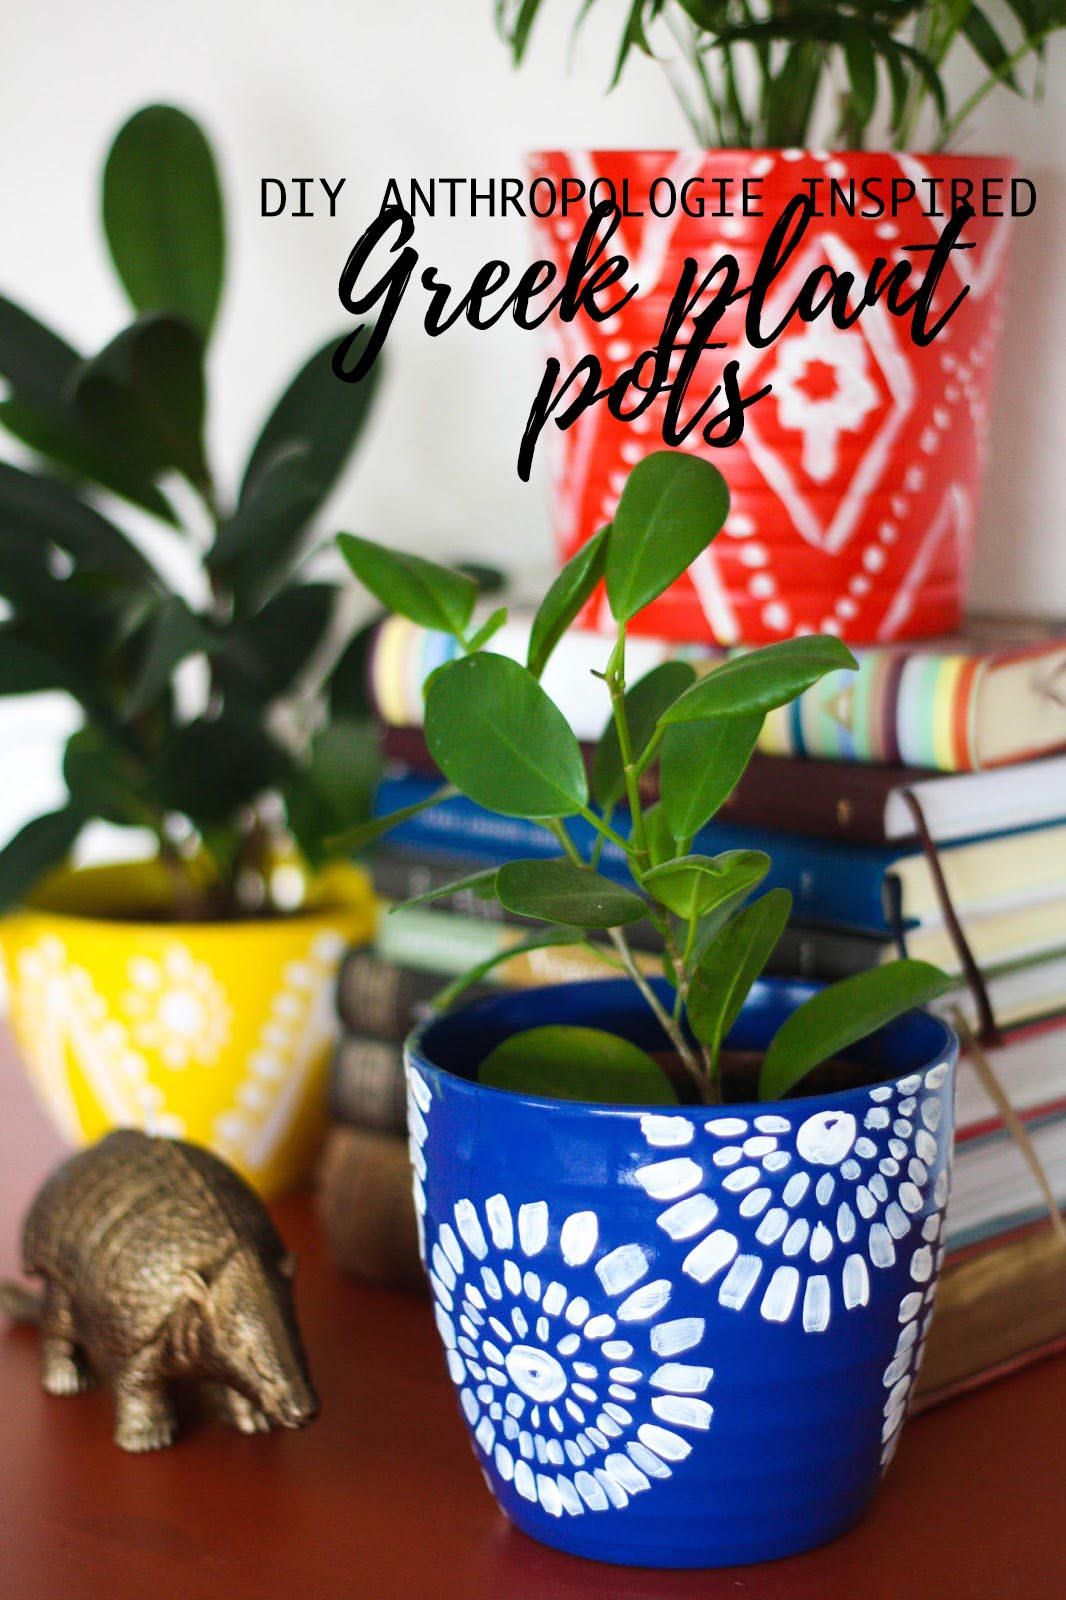 DIY Anthropologie-inspired Greek plant pots